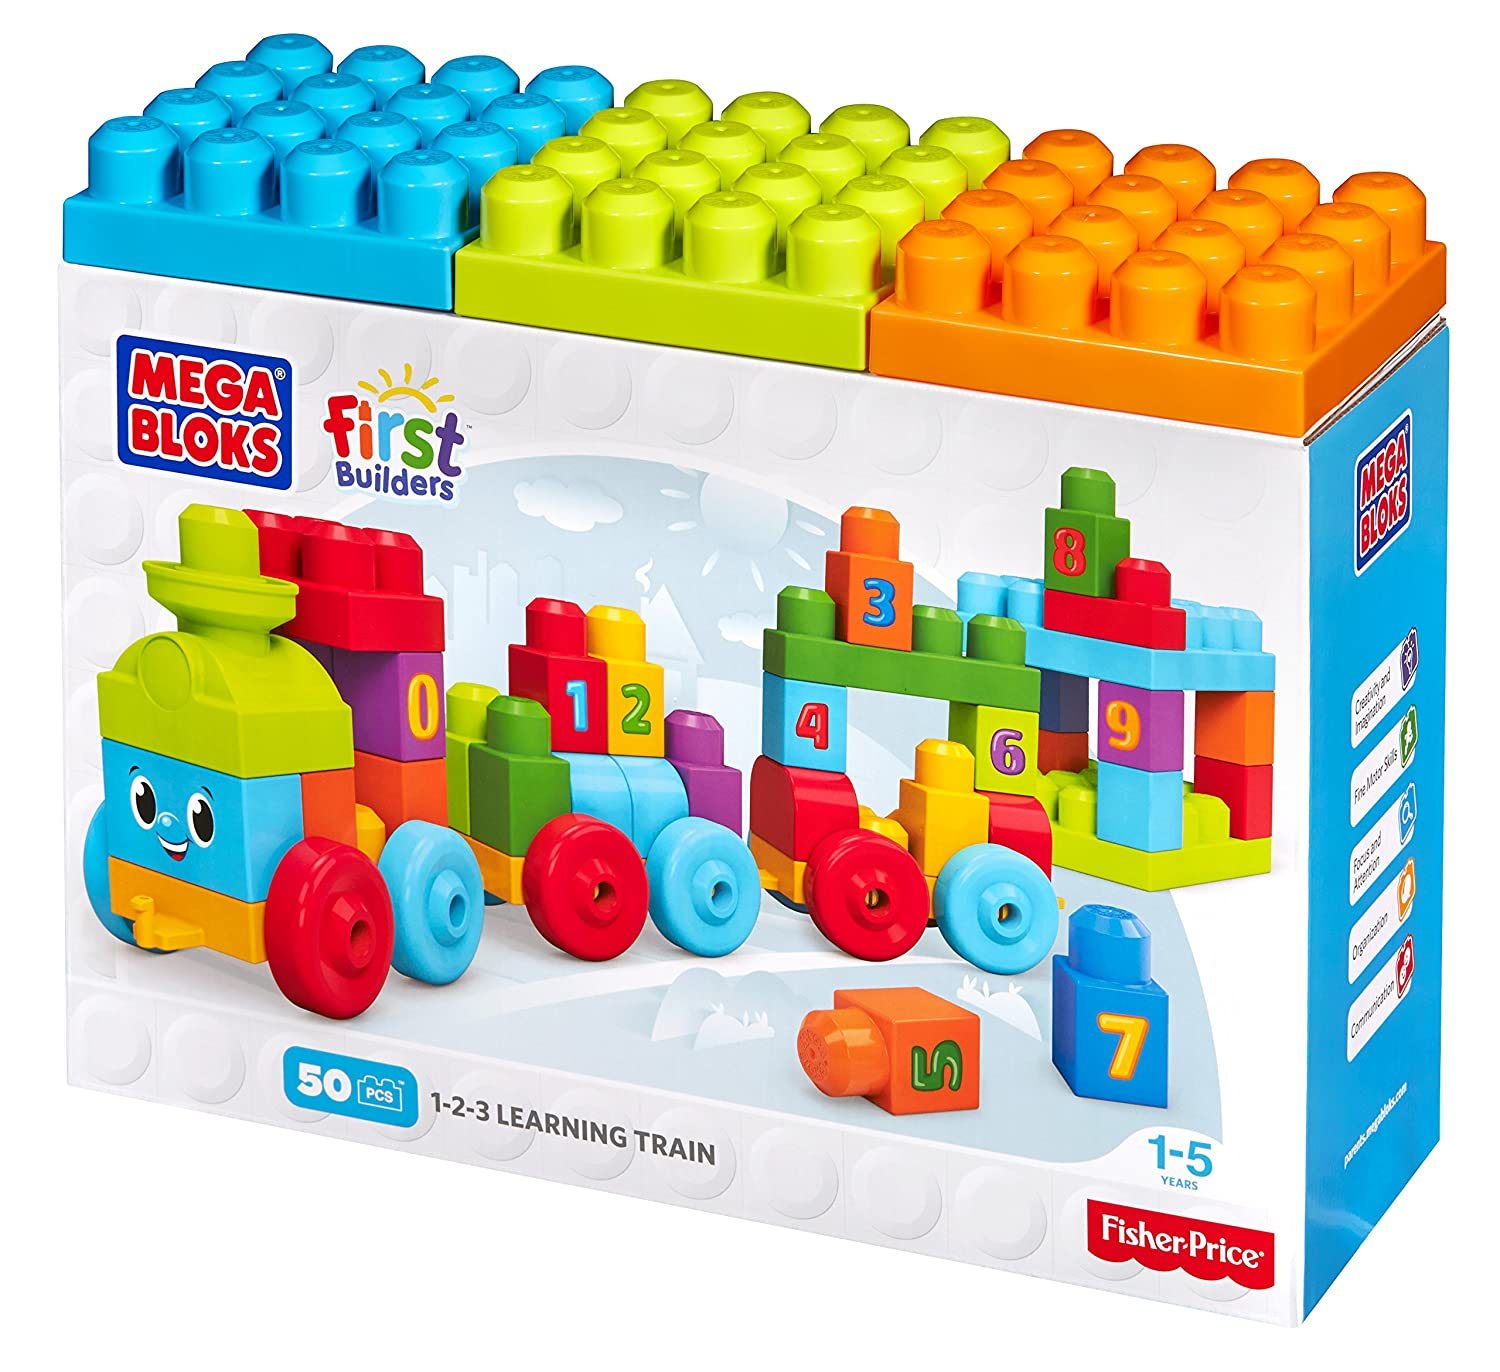 Figures Playset Organizer Building Bricks Case Accessories For Kids by LMB Life Made Better LMB162 Toy Storage Carrying Box